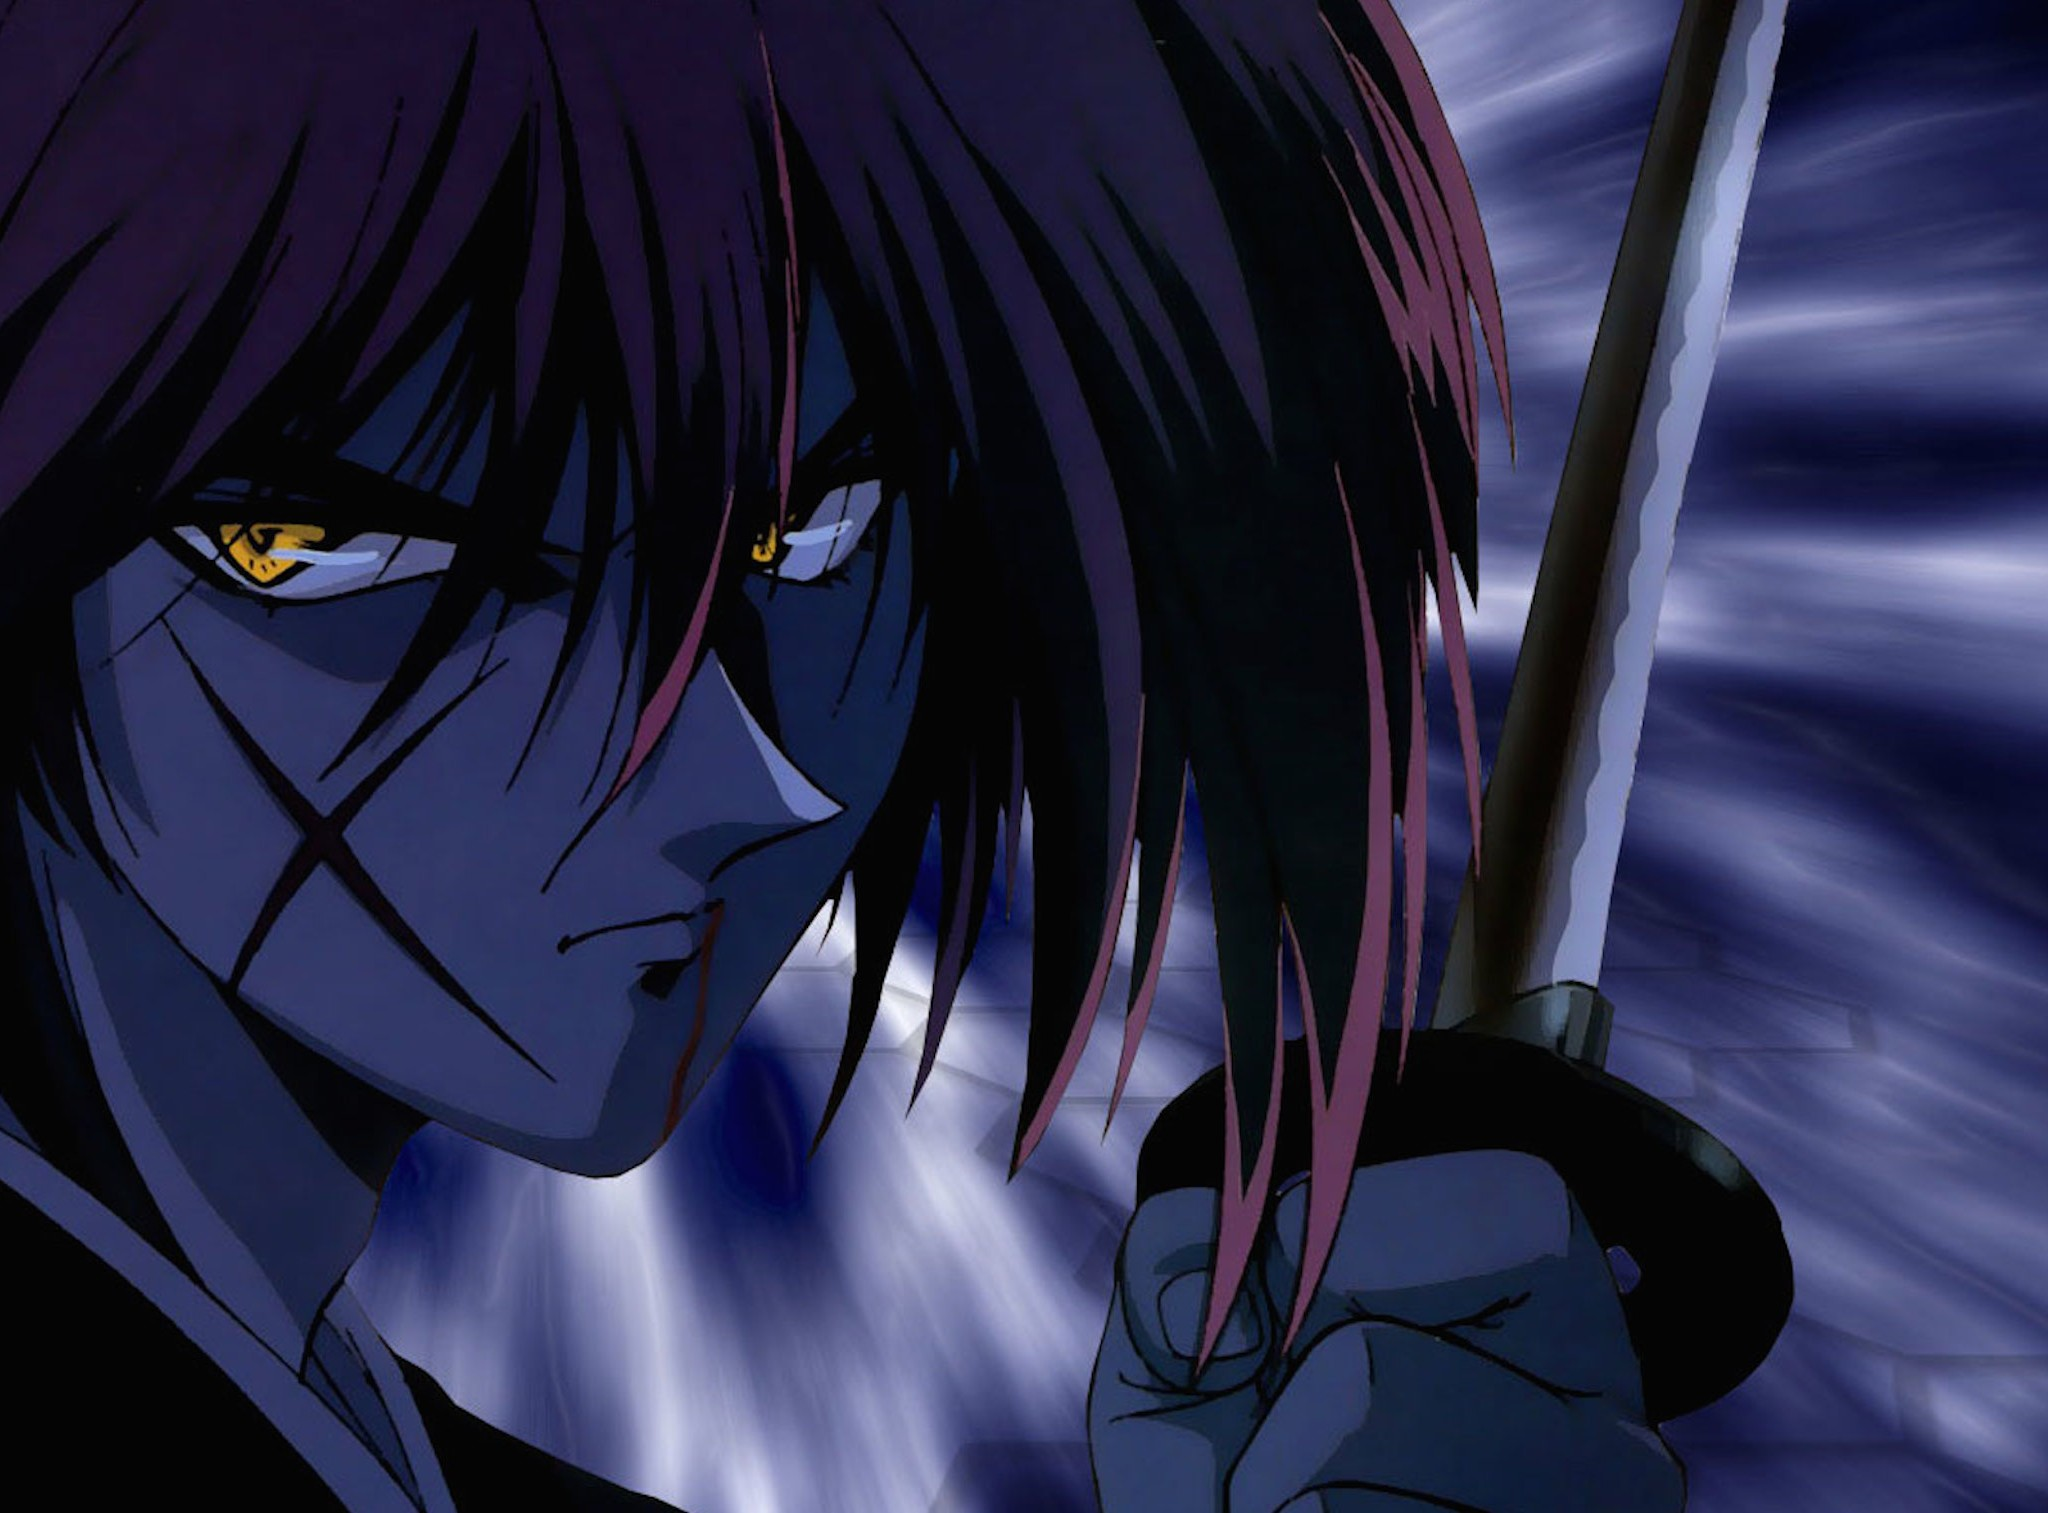 rurouni kenshin anime wallpaper - free anime downloads